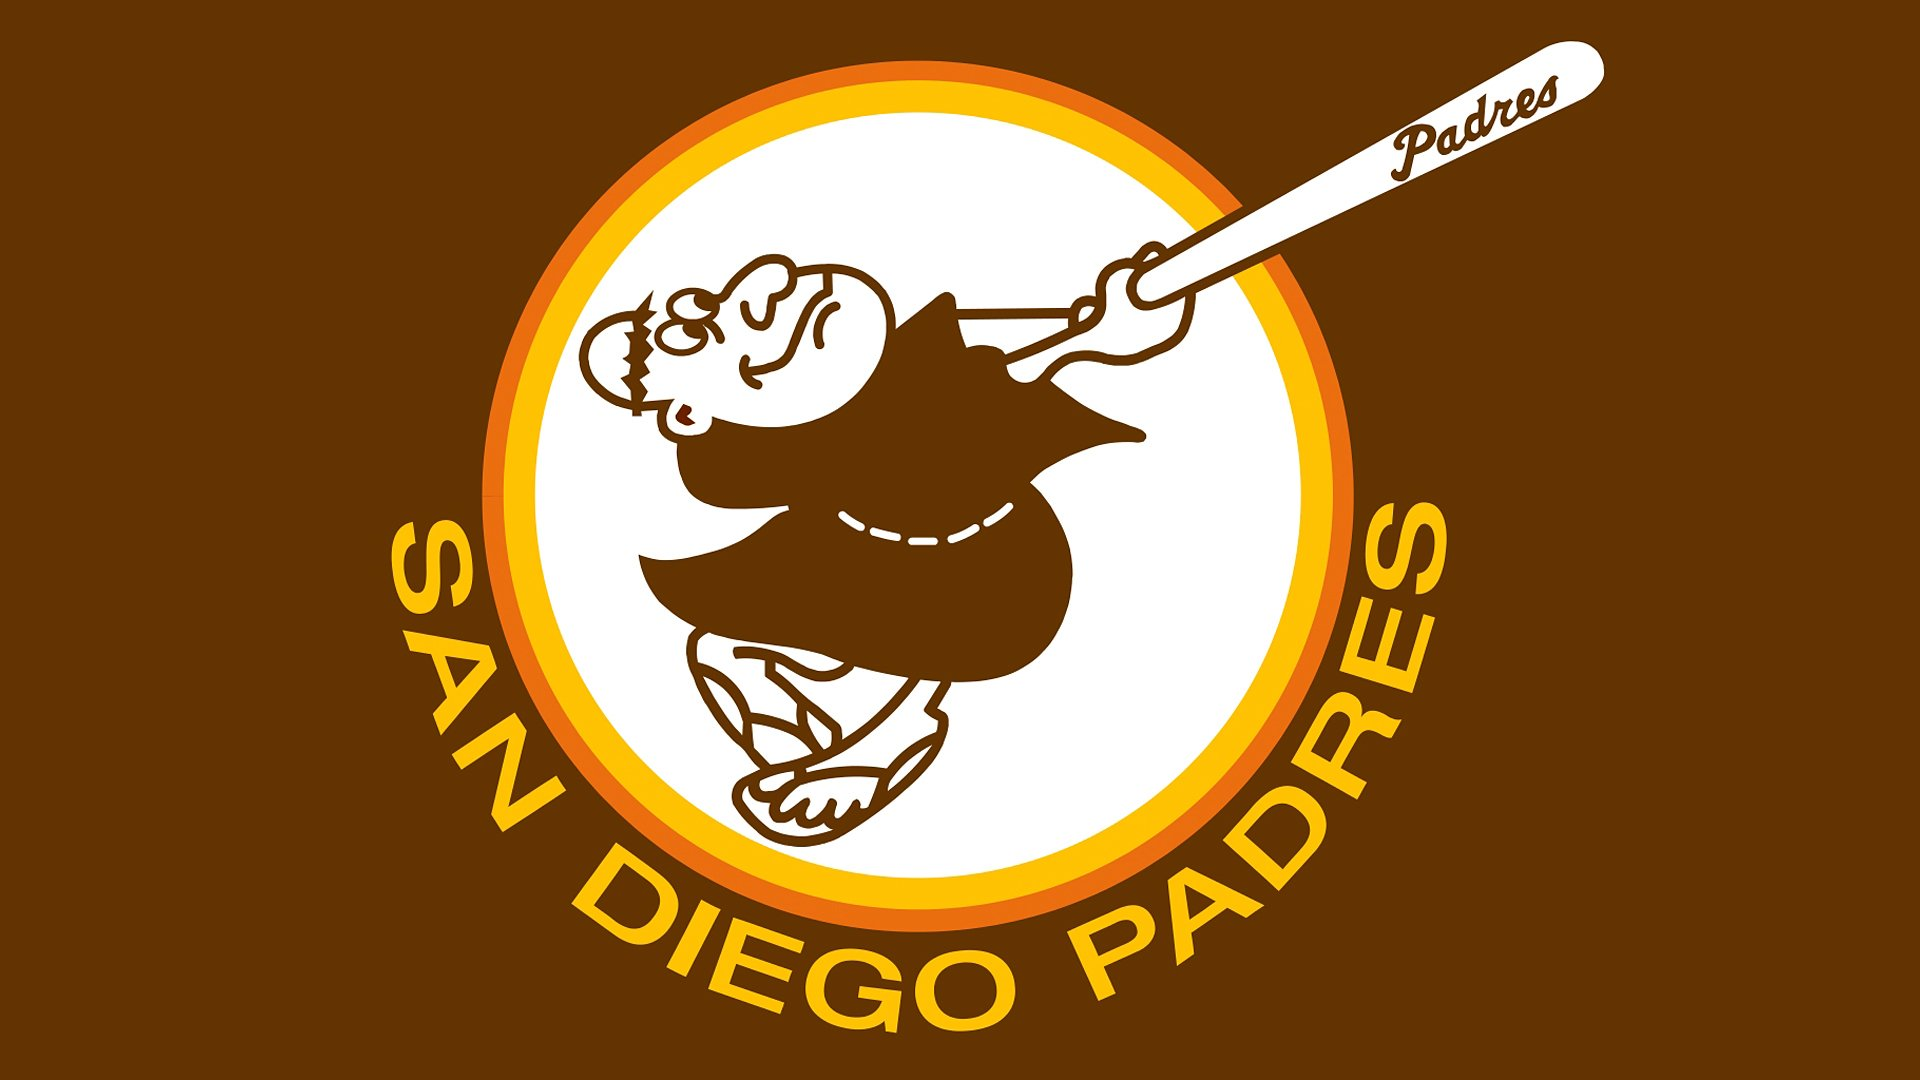 2 San Diego Padres Hd Wallpapers Background Images Wallpaper Abyss